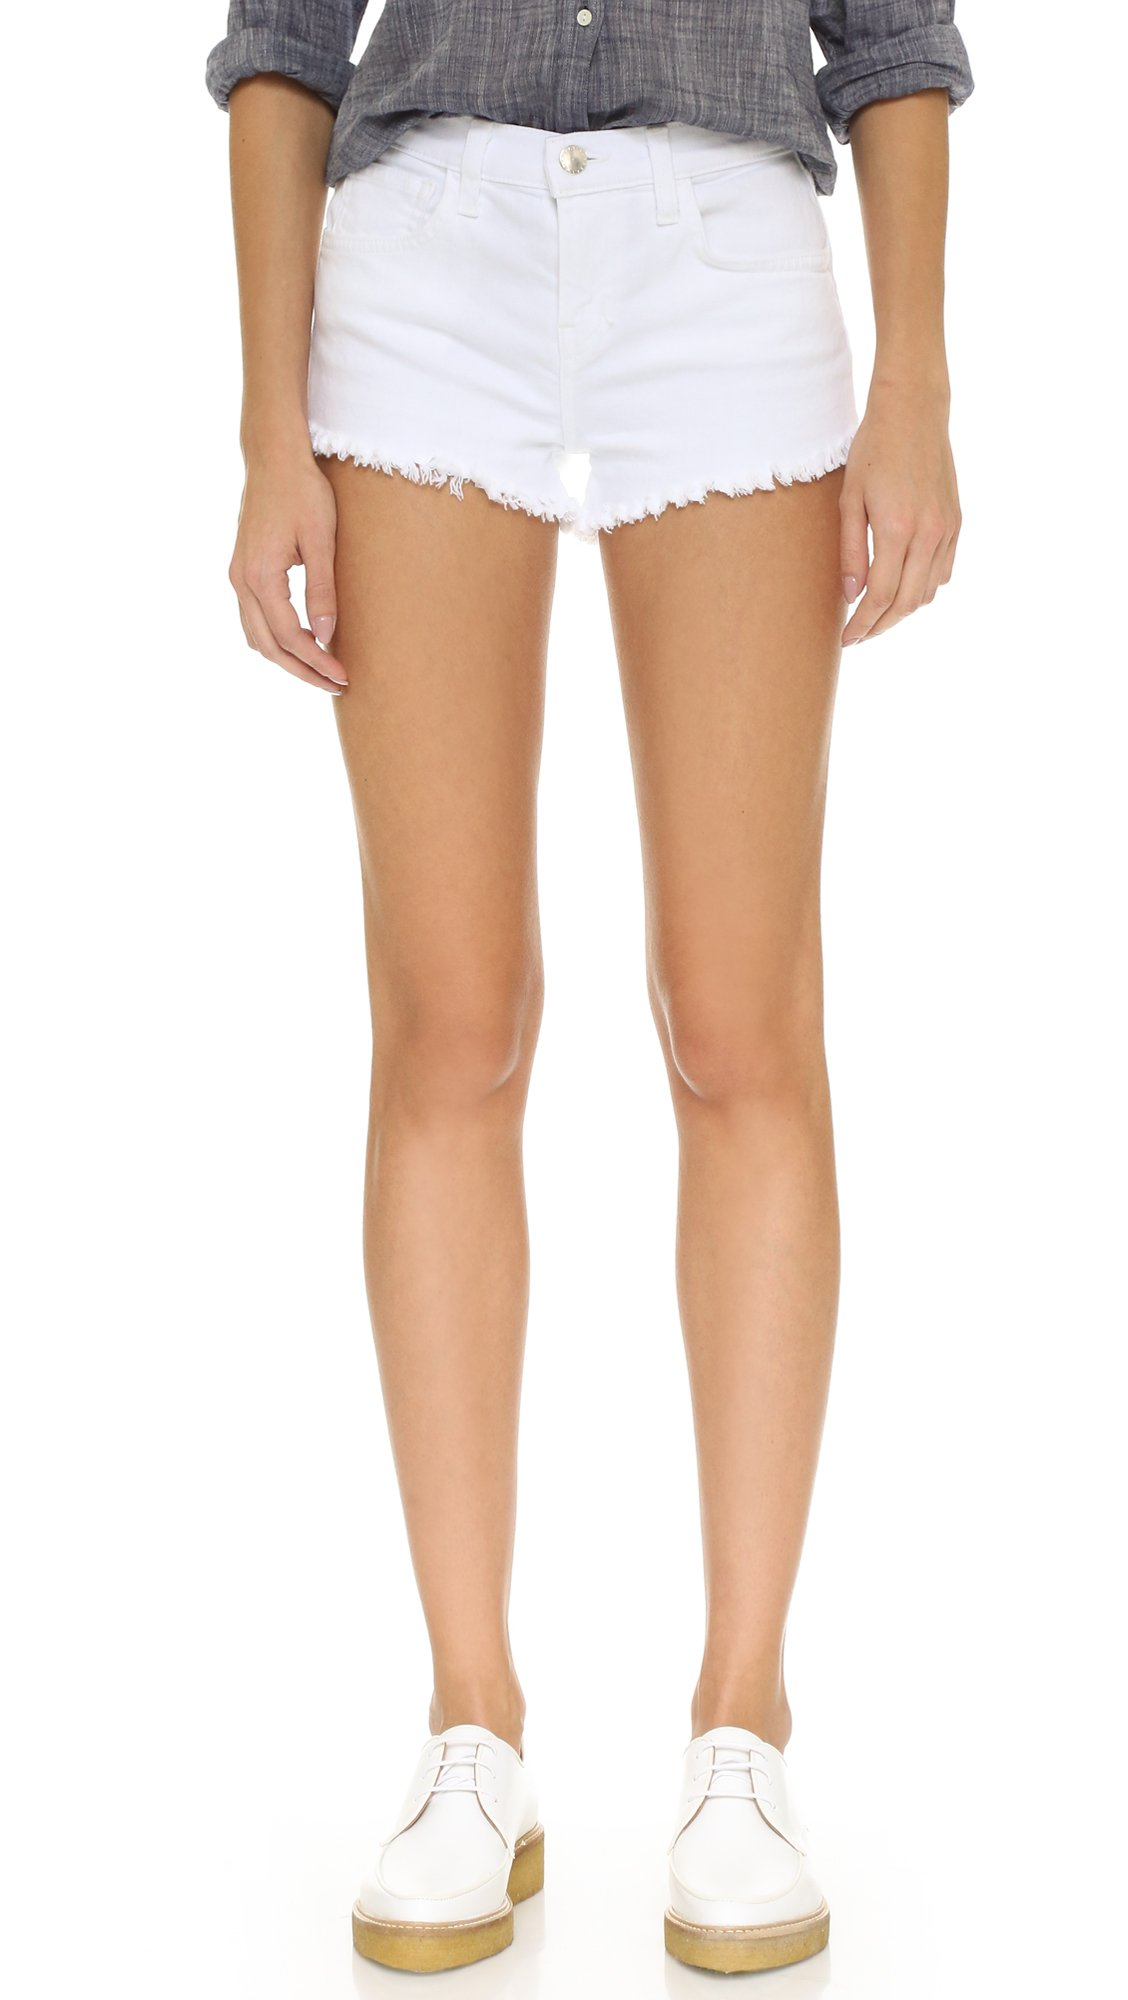 L'AGENCE Women's Zoe Perfect Fit Shorts, Blanc, 24